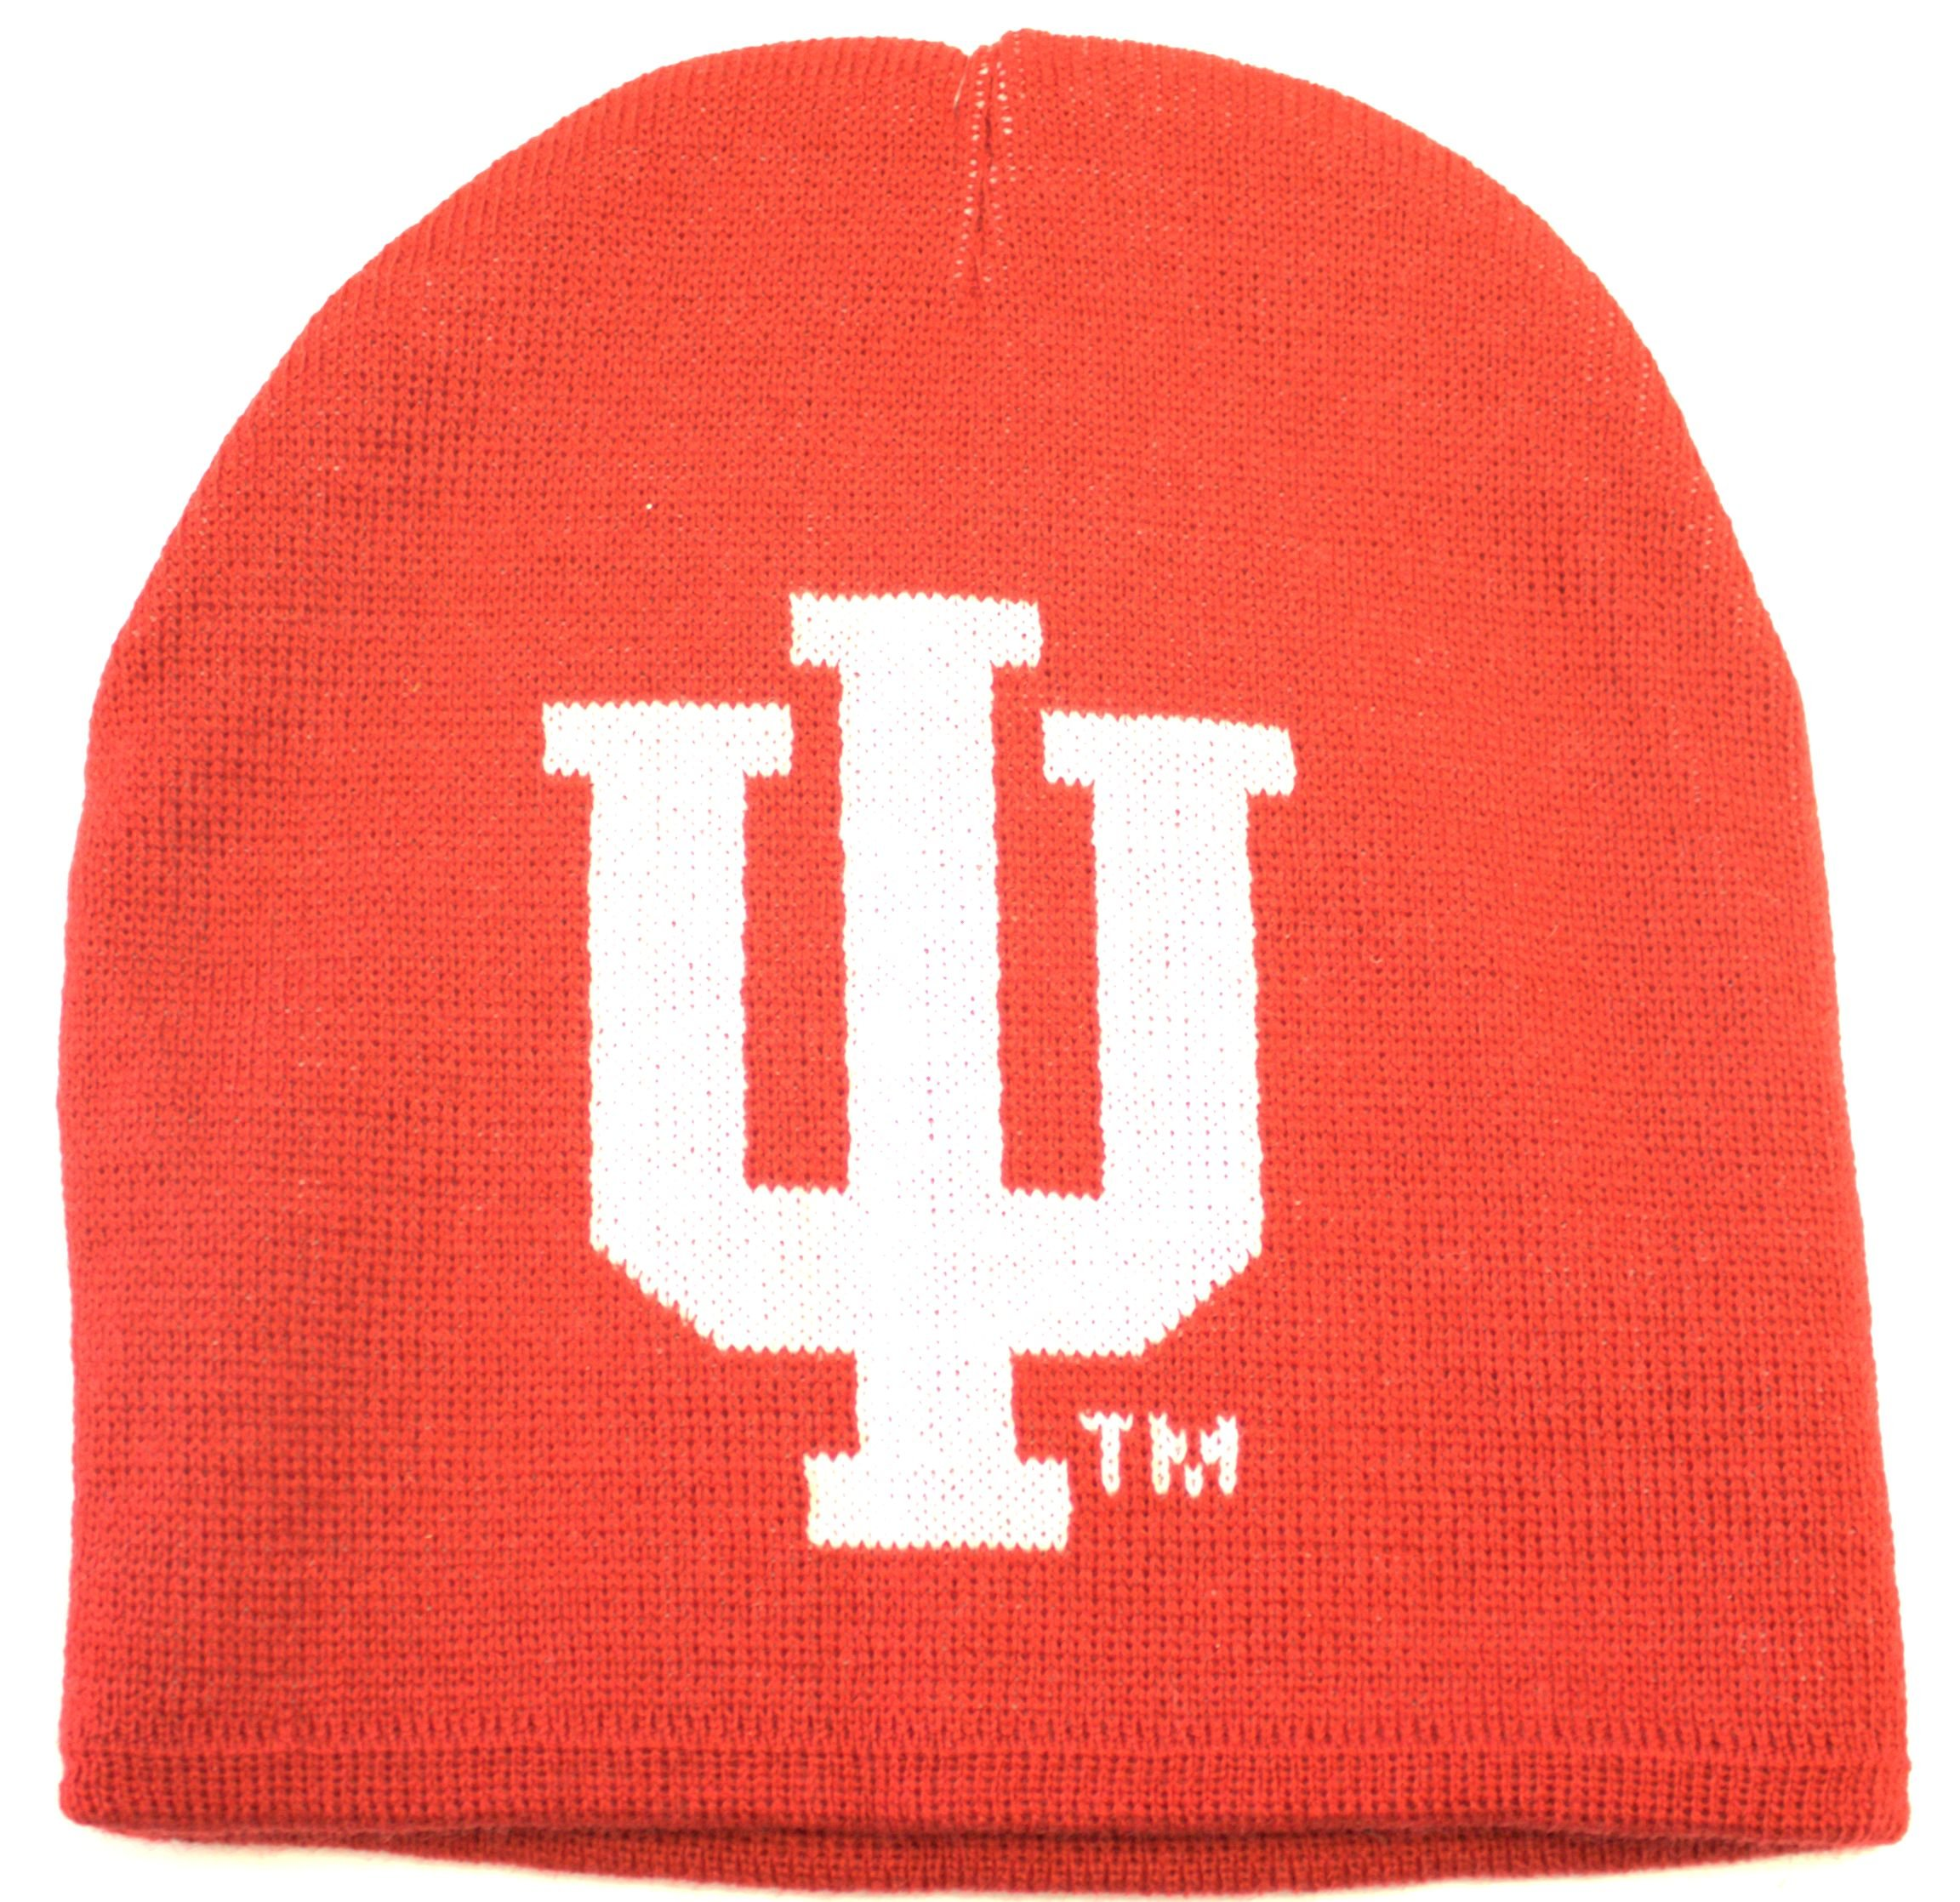 NCAA Indiana Hoosiers Jacquard Knit Hat, One Size, Red